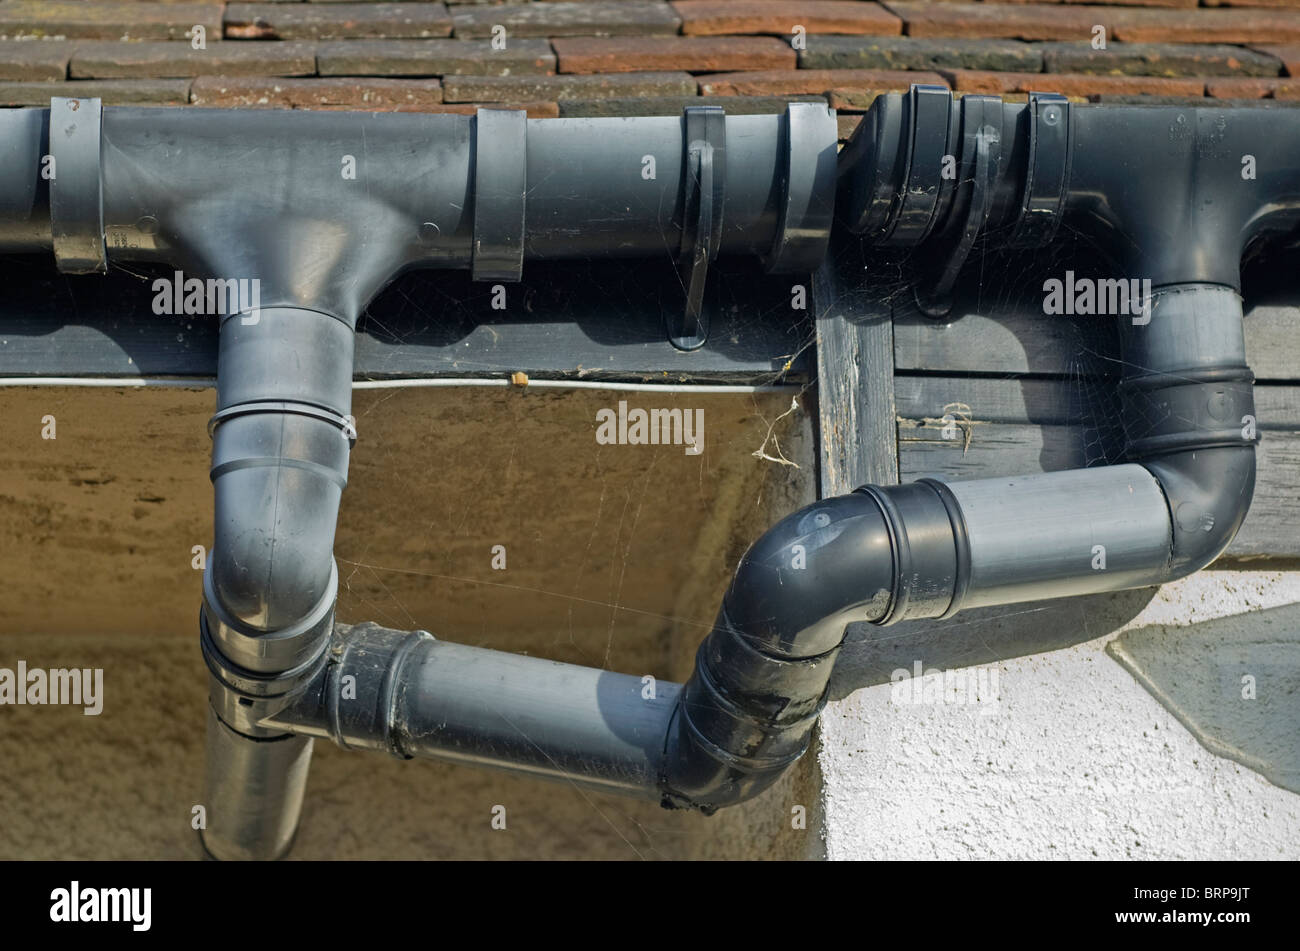 Guttering and drainage pipes on a house in poor condition. - Stock Image